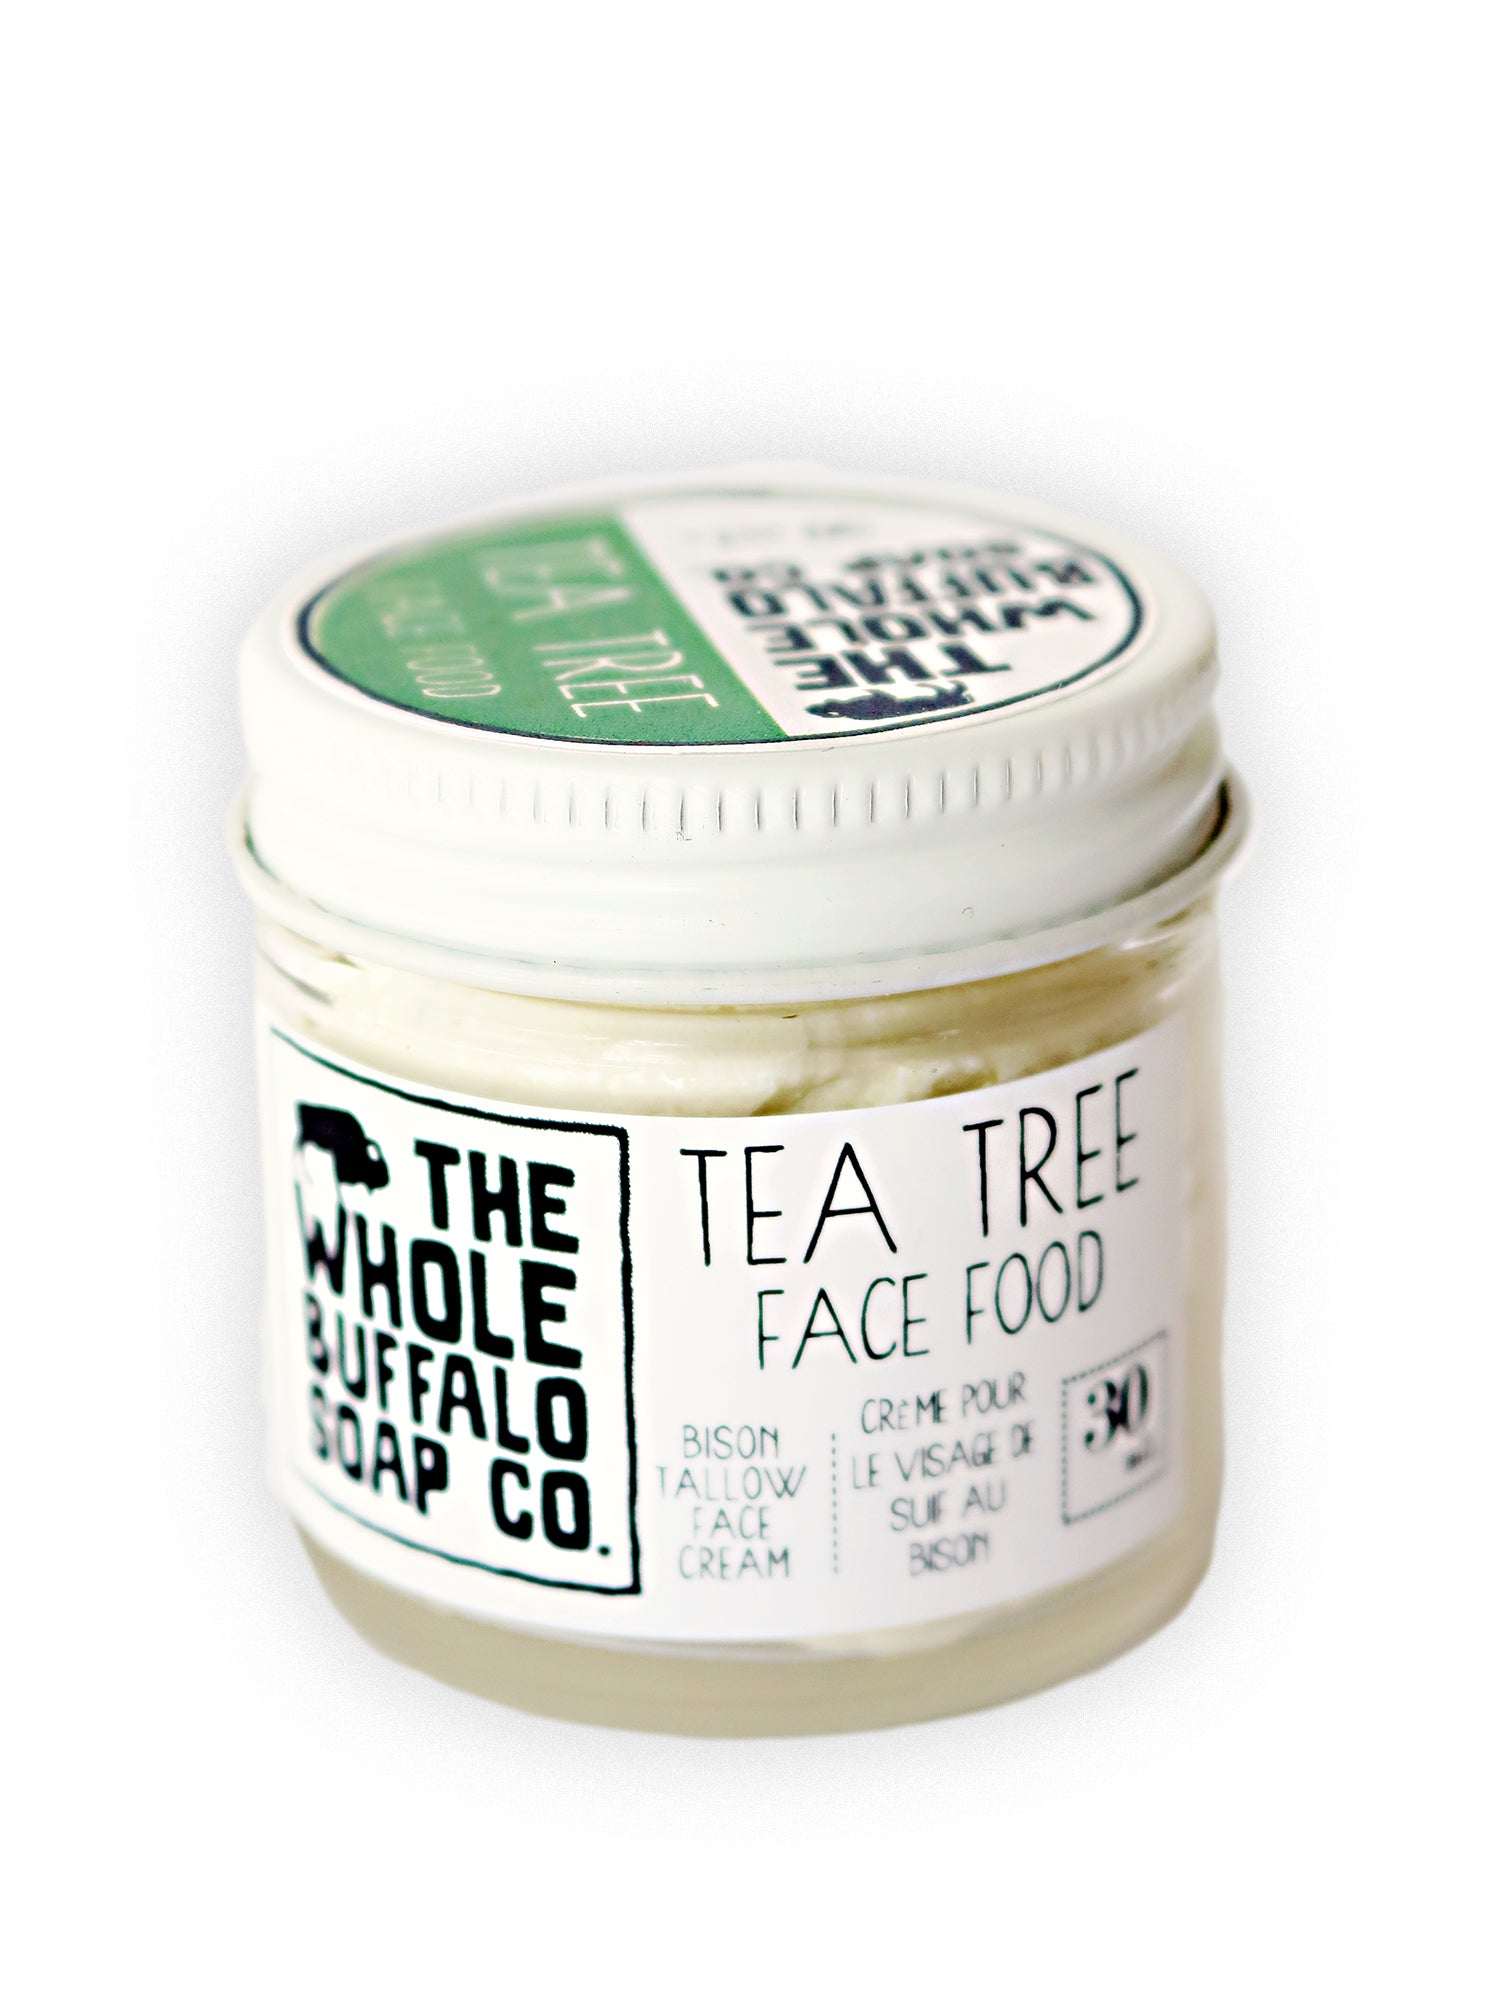 Tea Tree Face Food